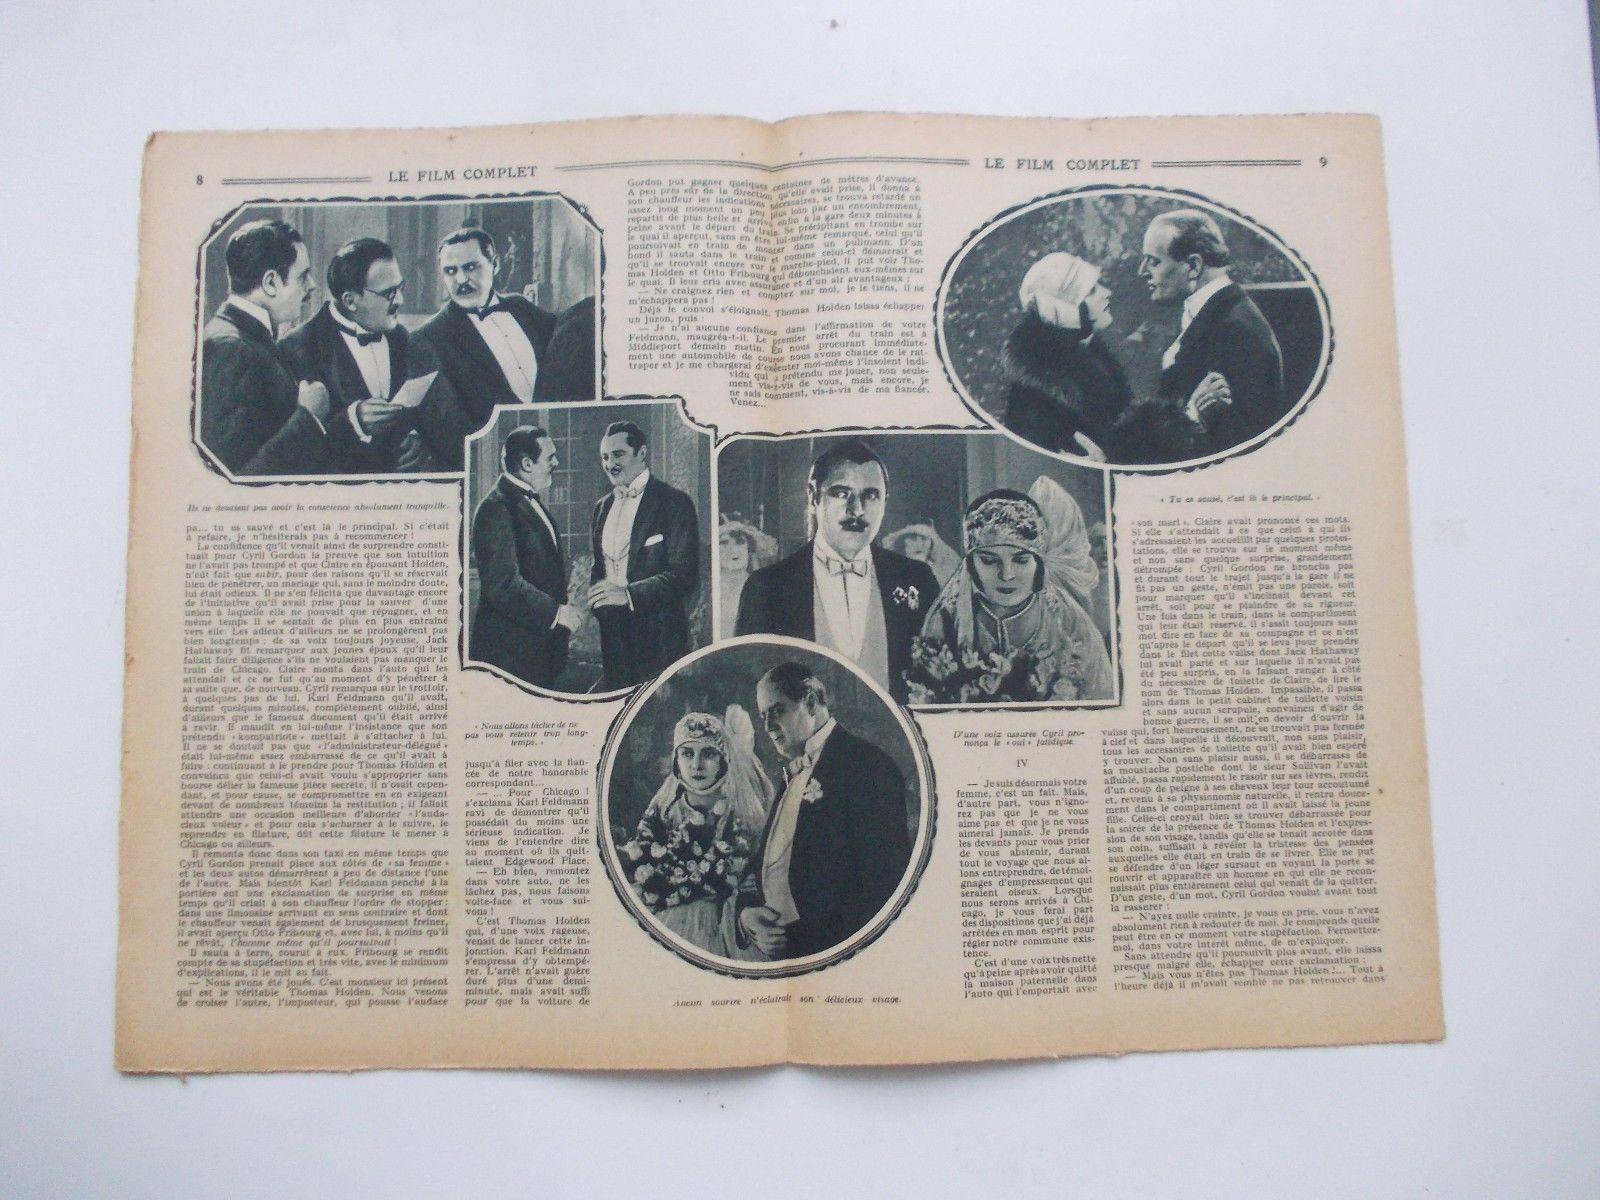 That's because in January 1926, the magazine Le Film Complet did a two-page  spread on it. Here's proof: